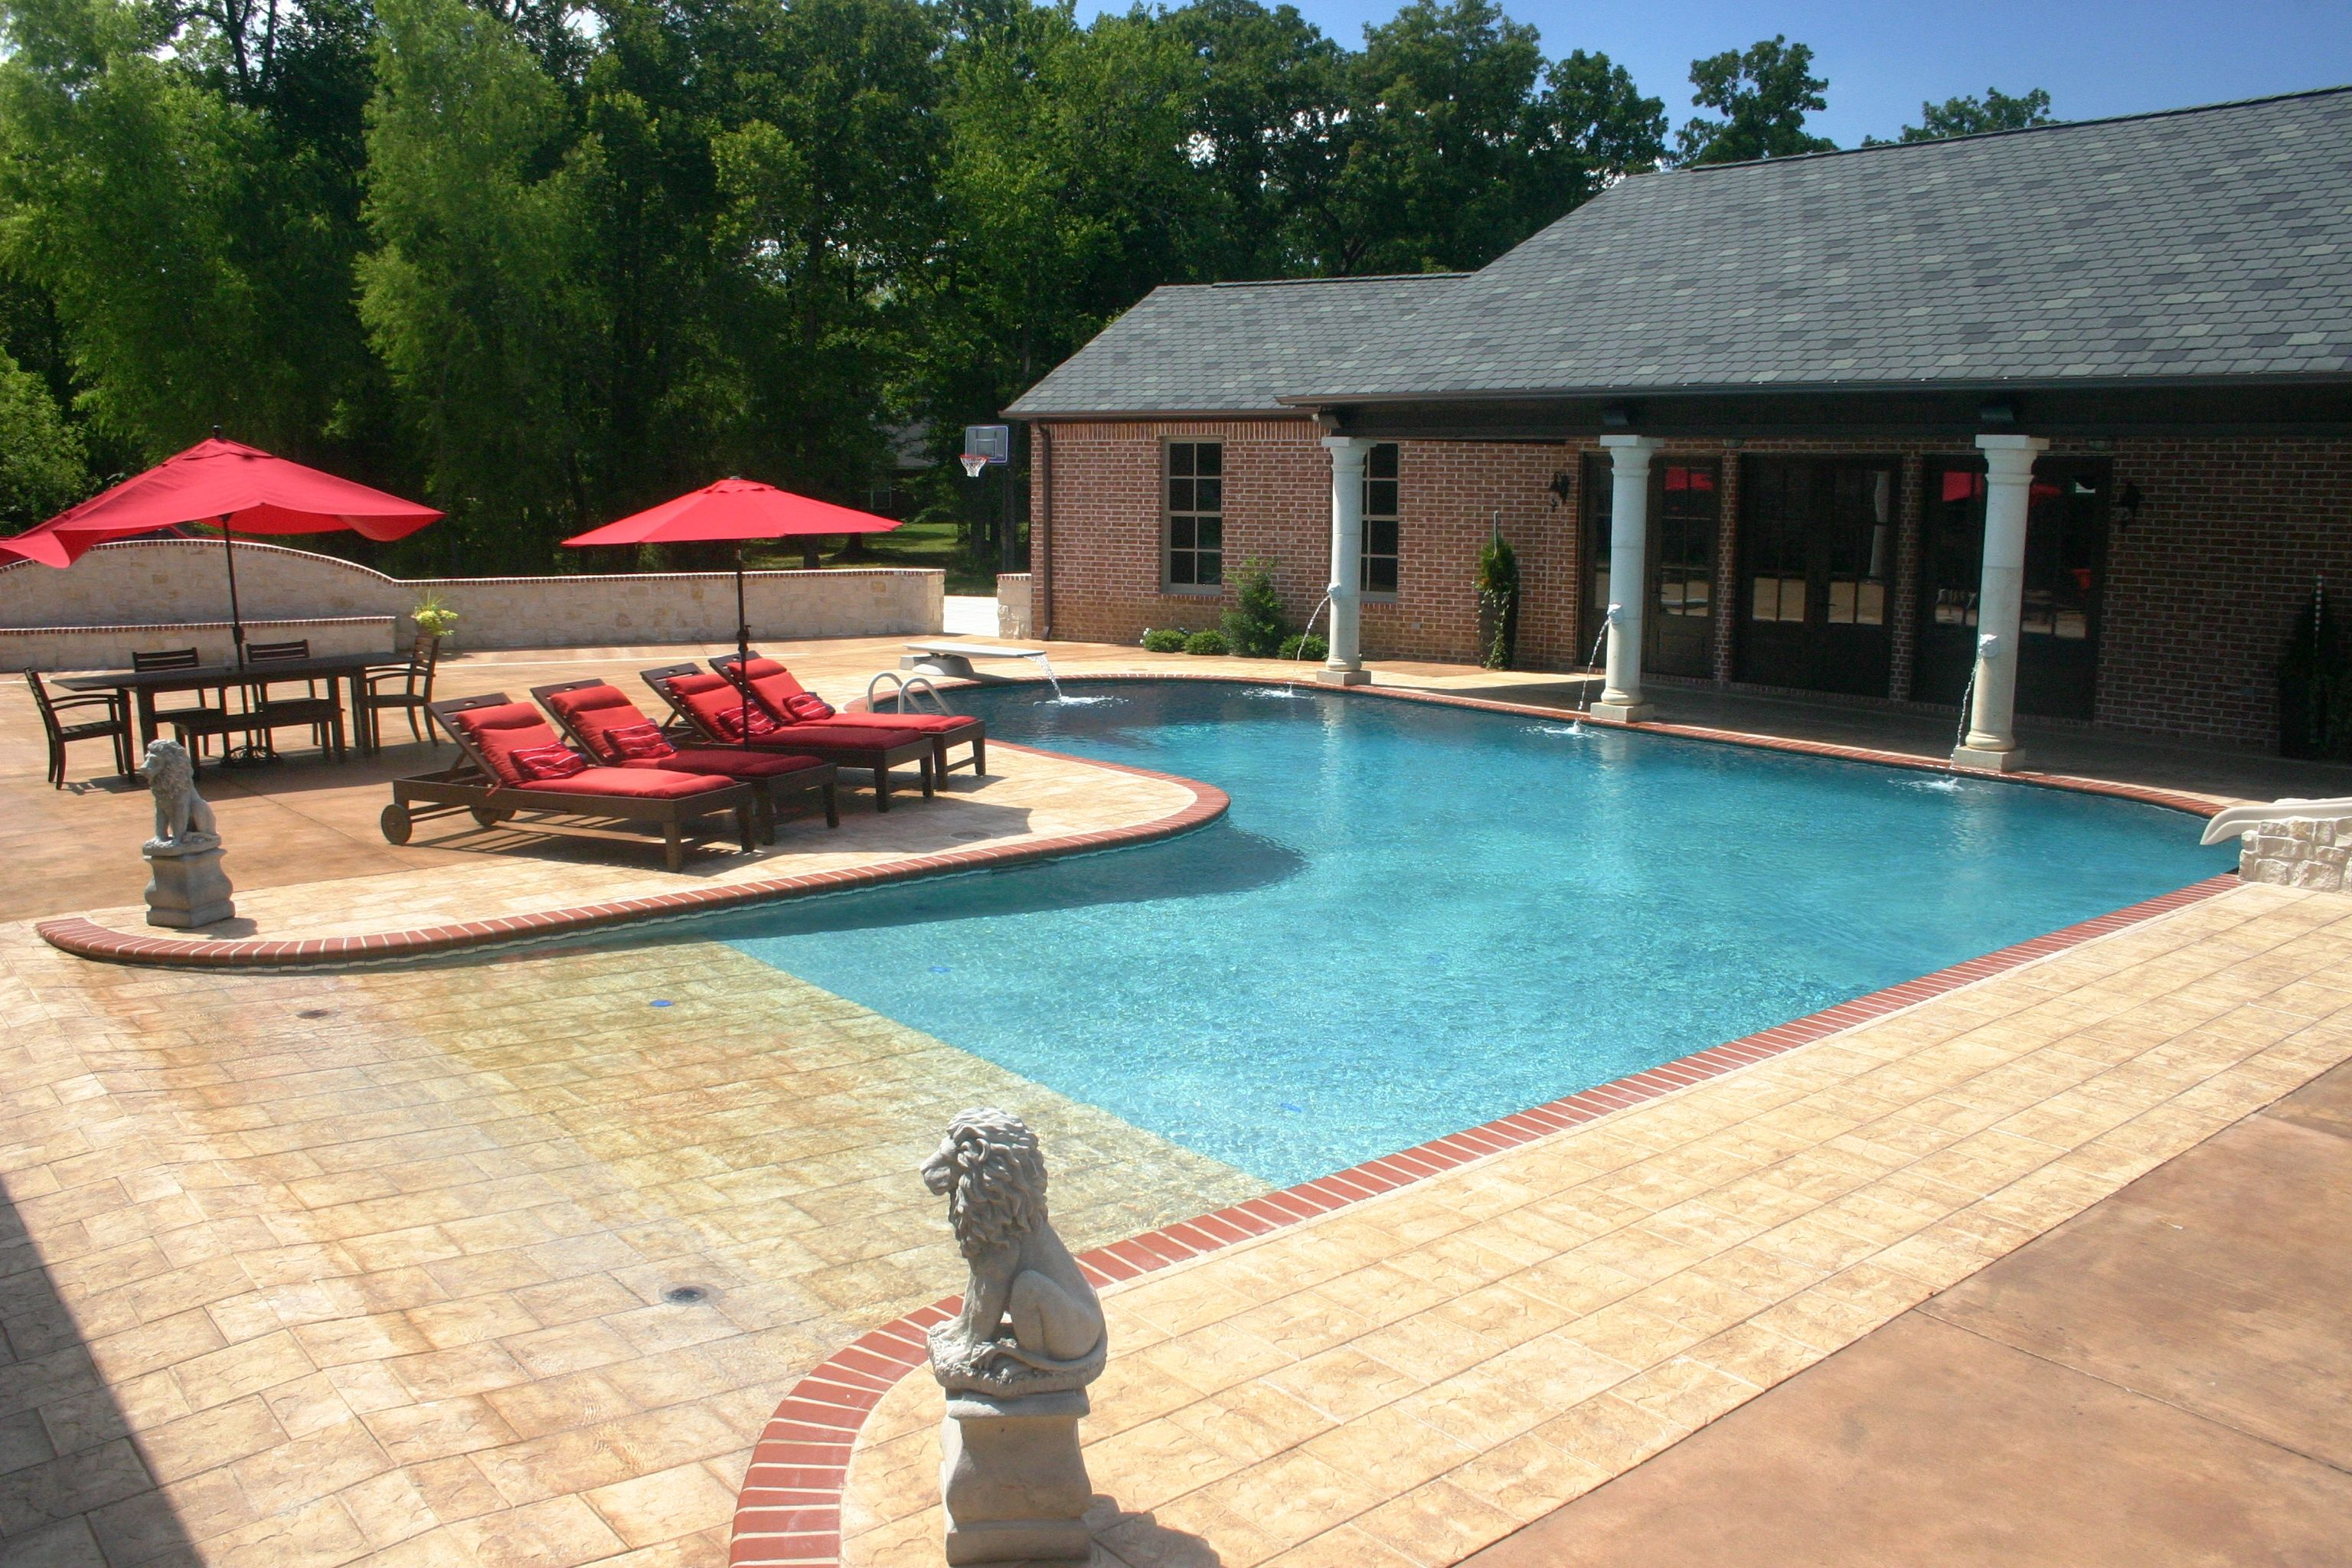 Beach entry fiberglass pools burton pools spas can for Pool design help